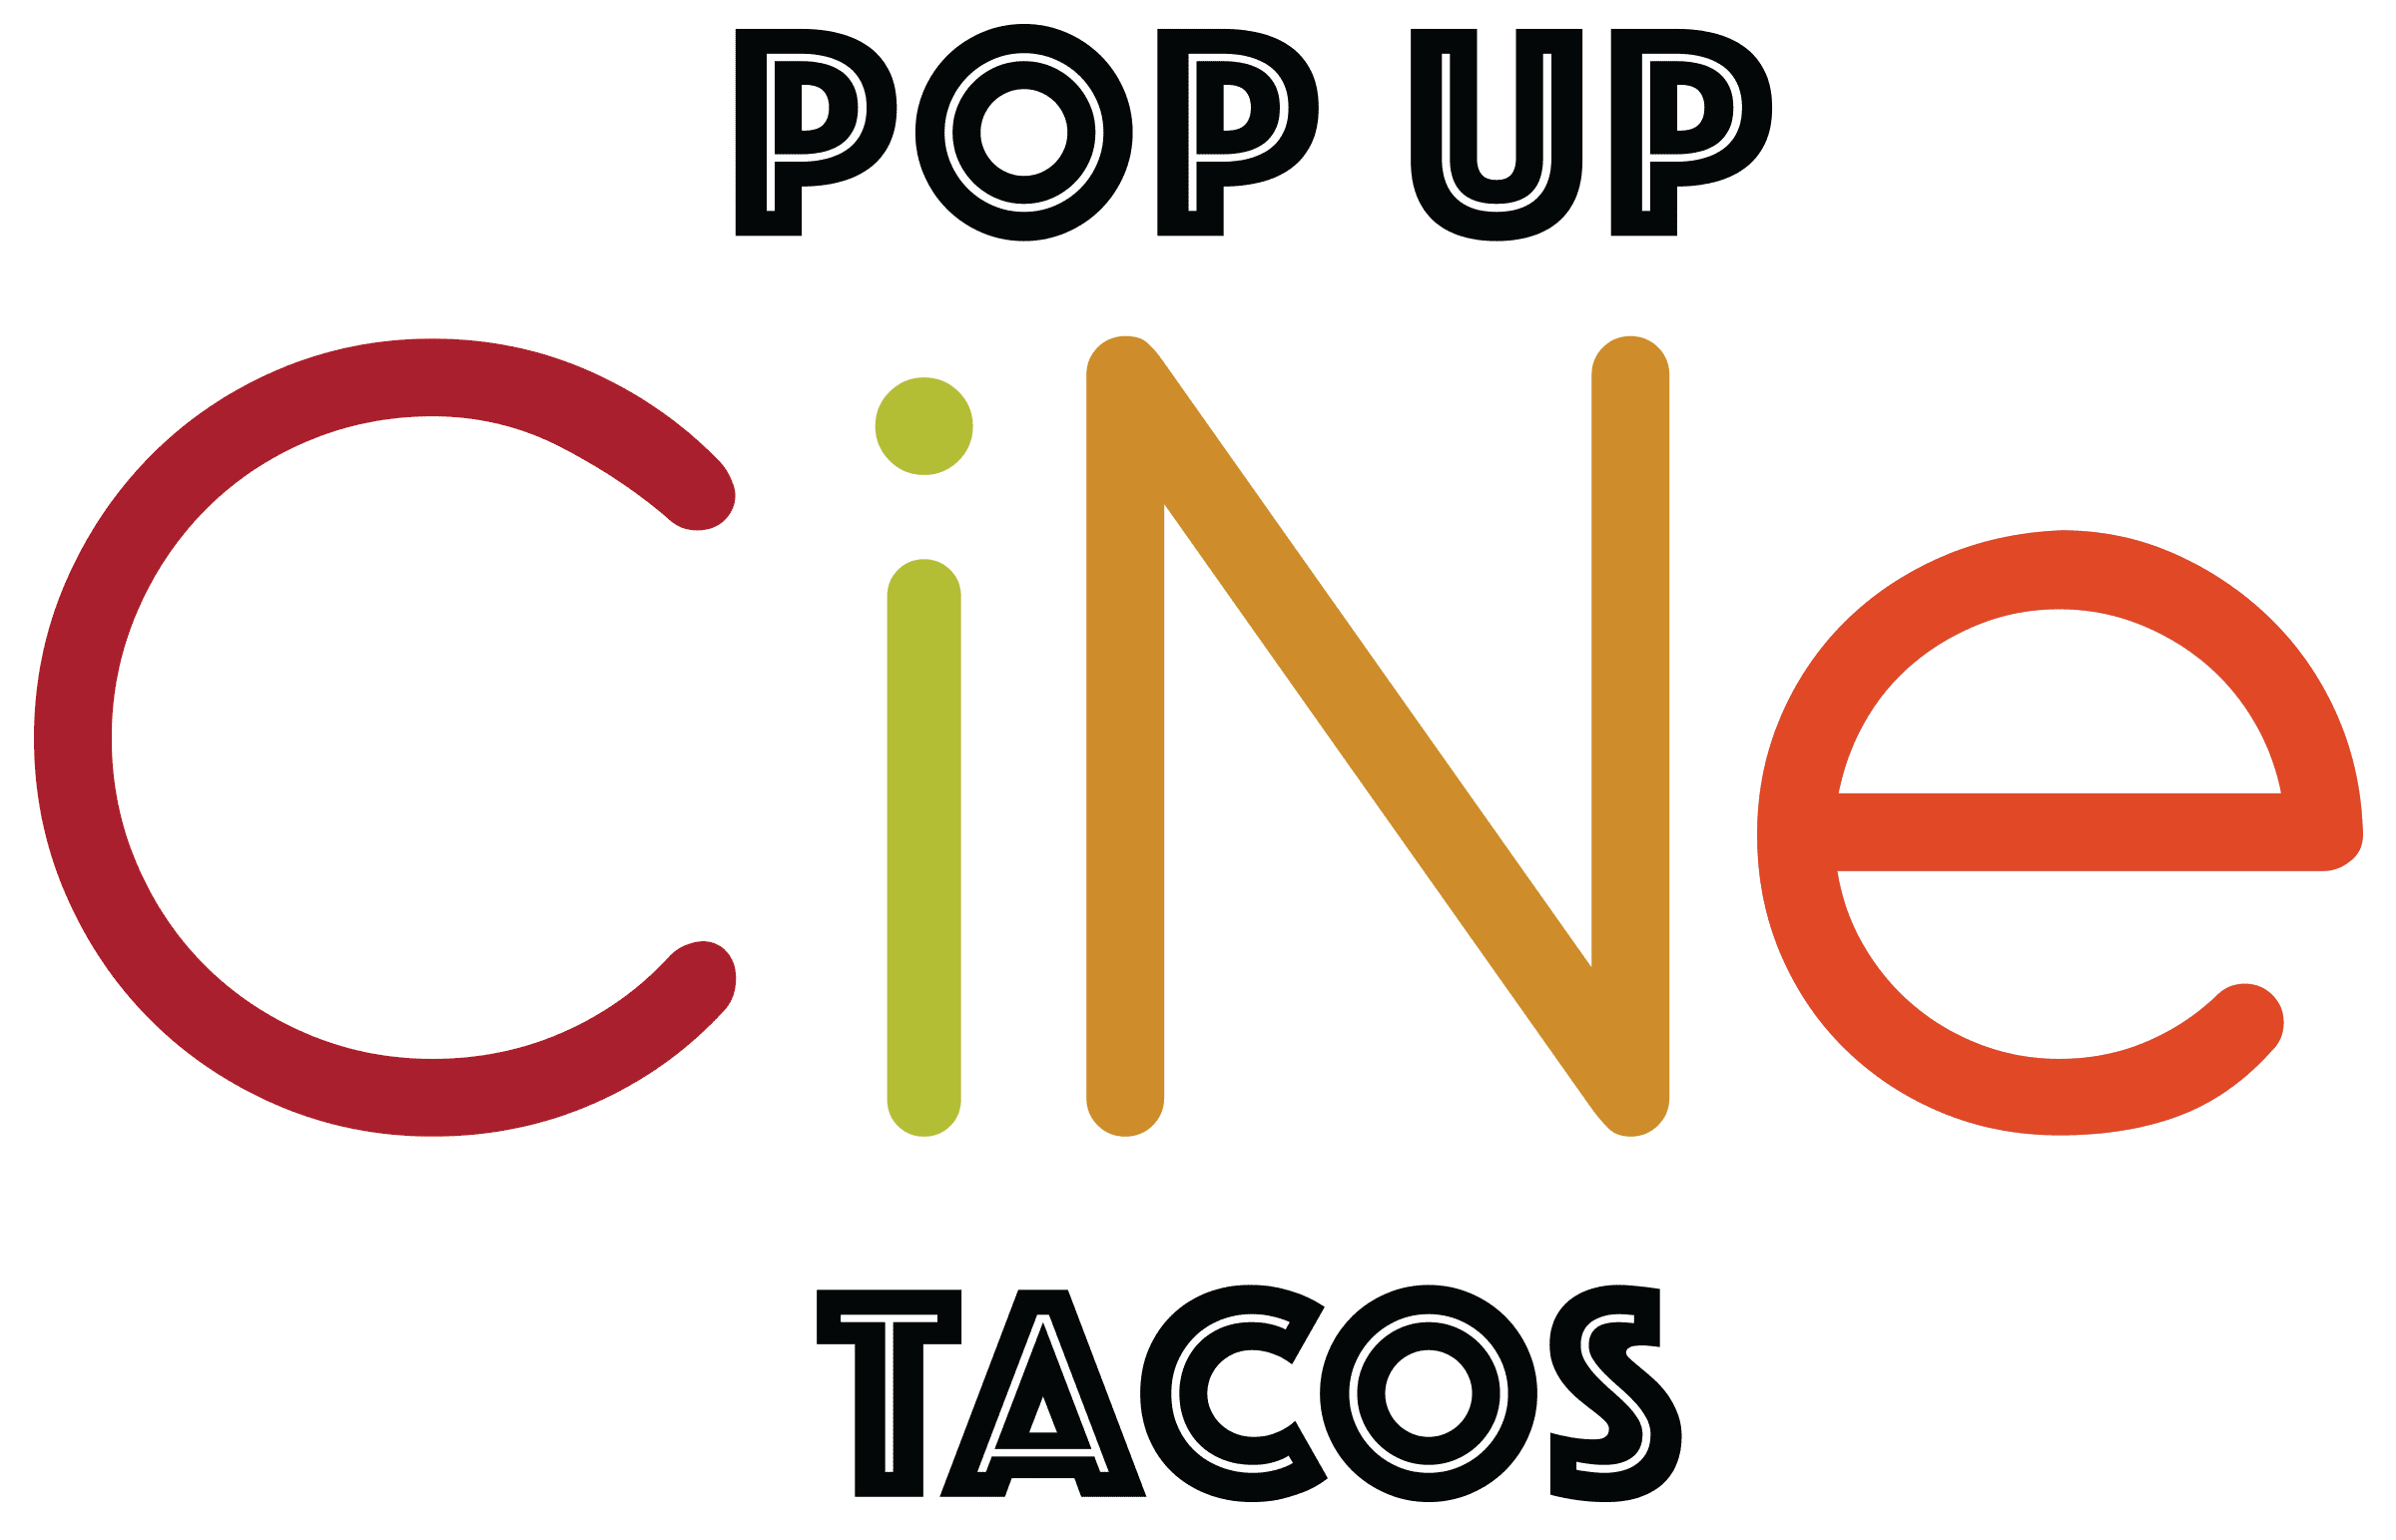 CiNe Pop Up Tacos